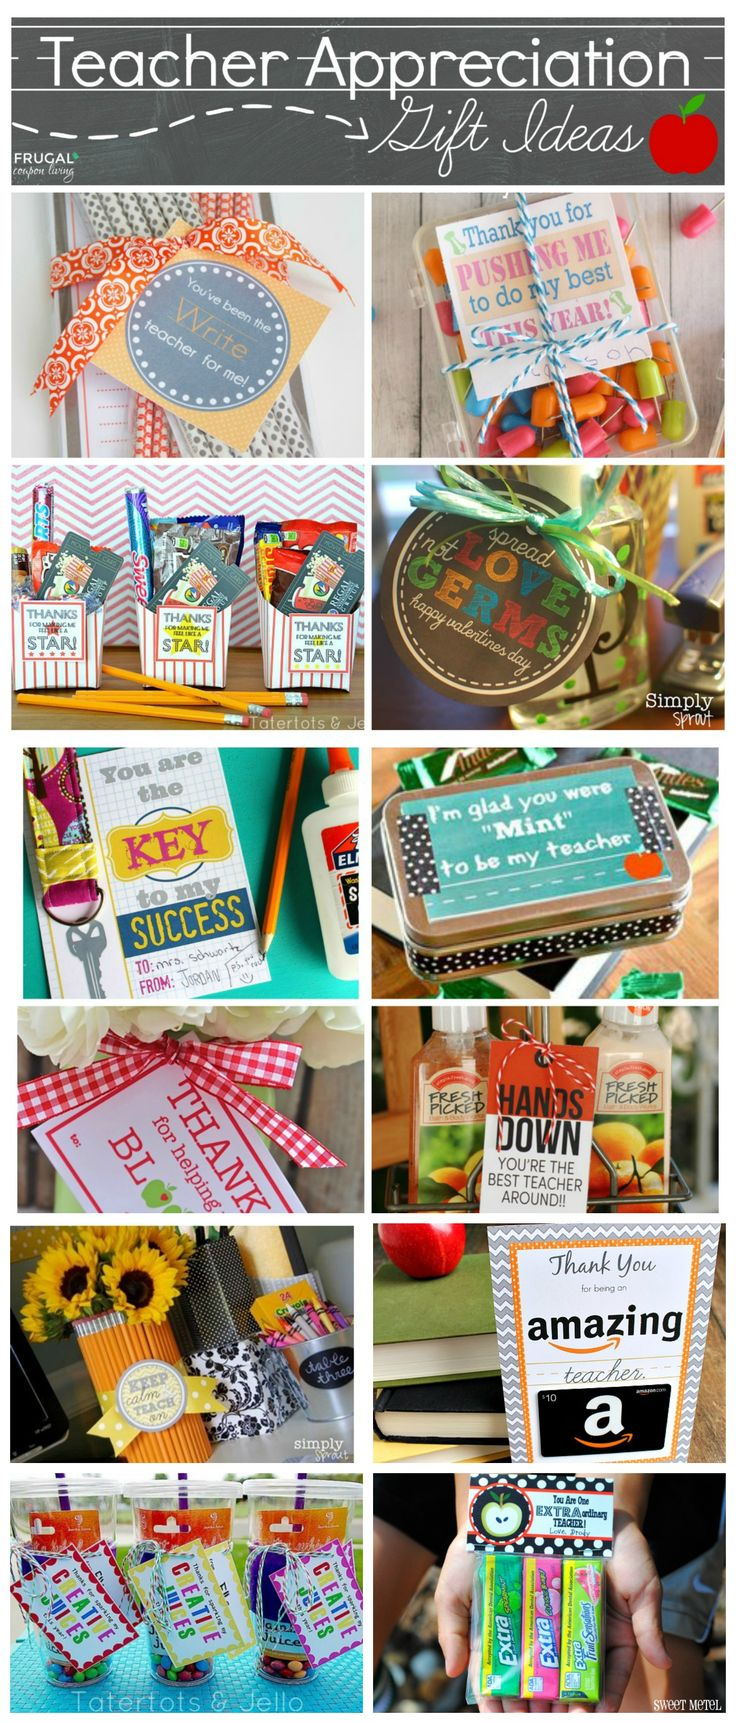 teacher-apprecation-round-up-frugal-coupon-living